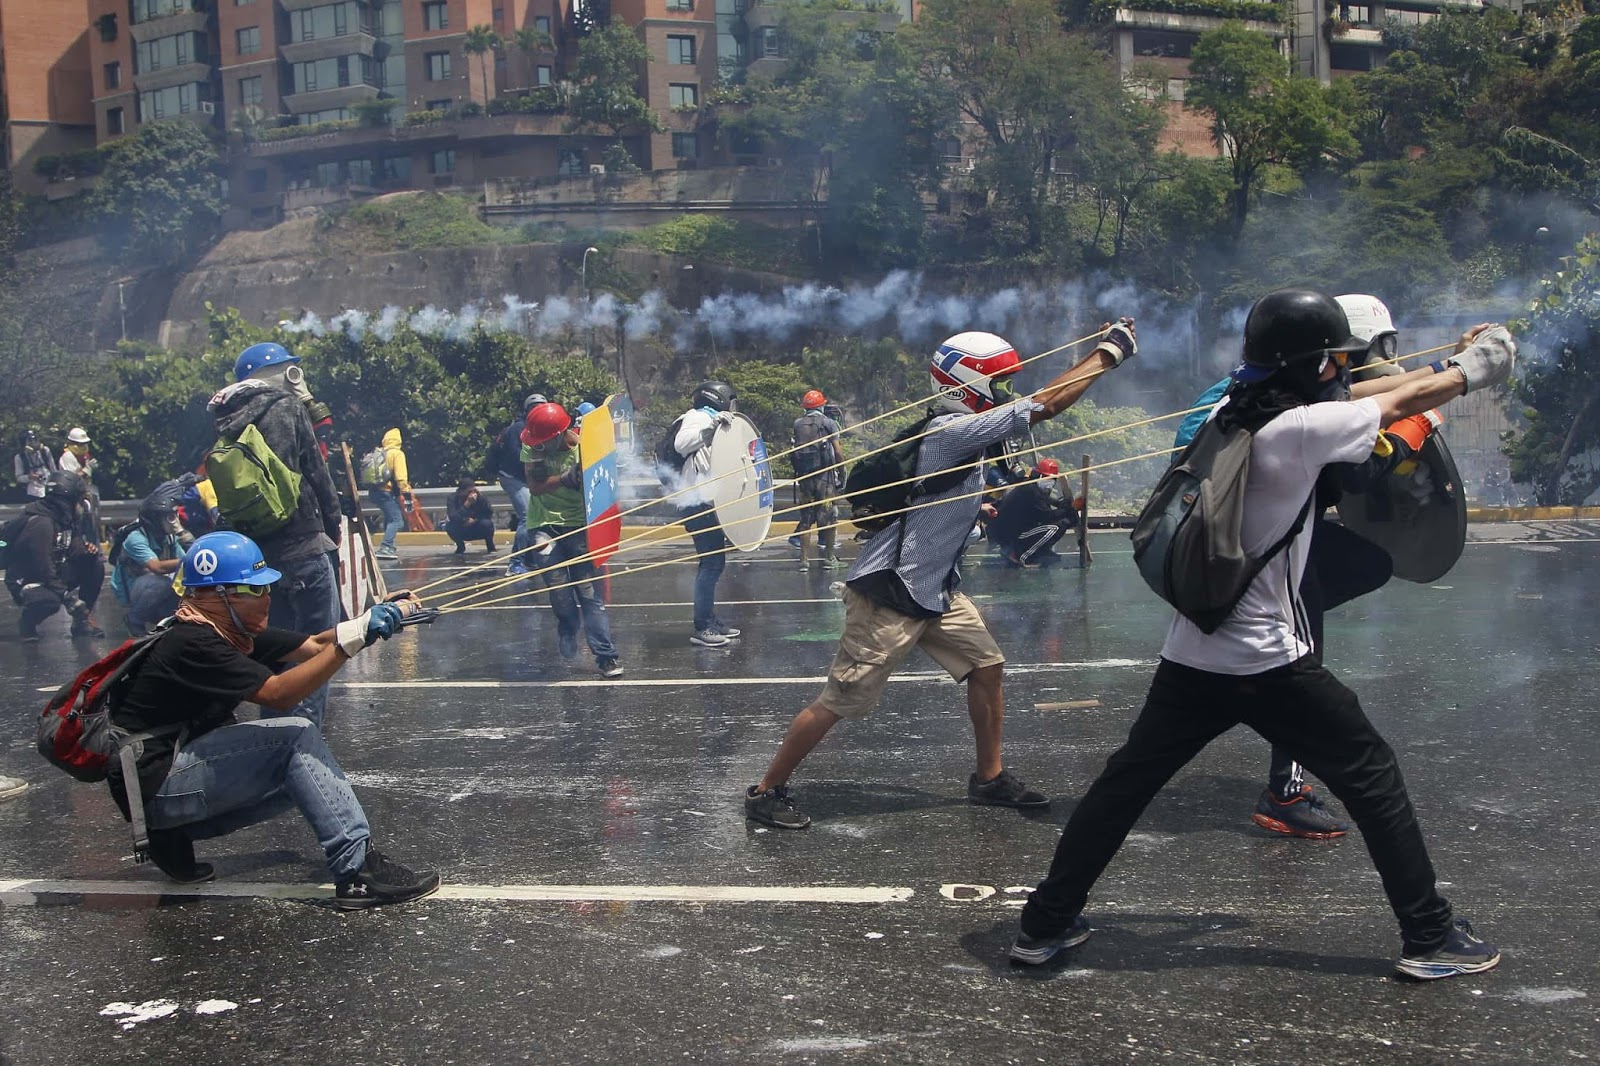 25 Of The Most Intriguing Pictures Of 2017 - Anti-government protesters in Caracas, Venezuela